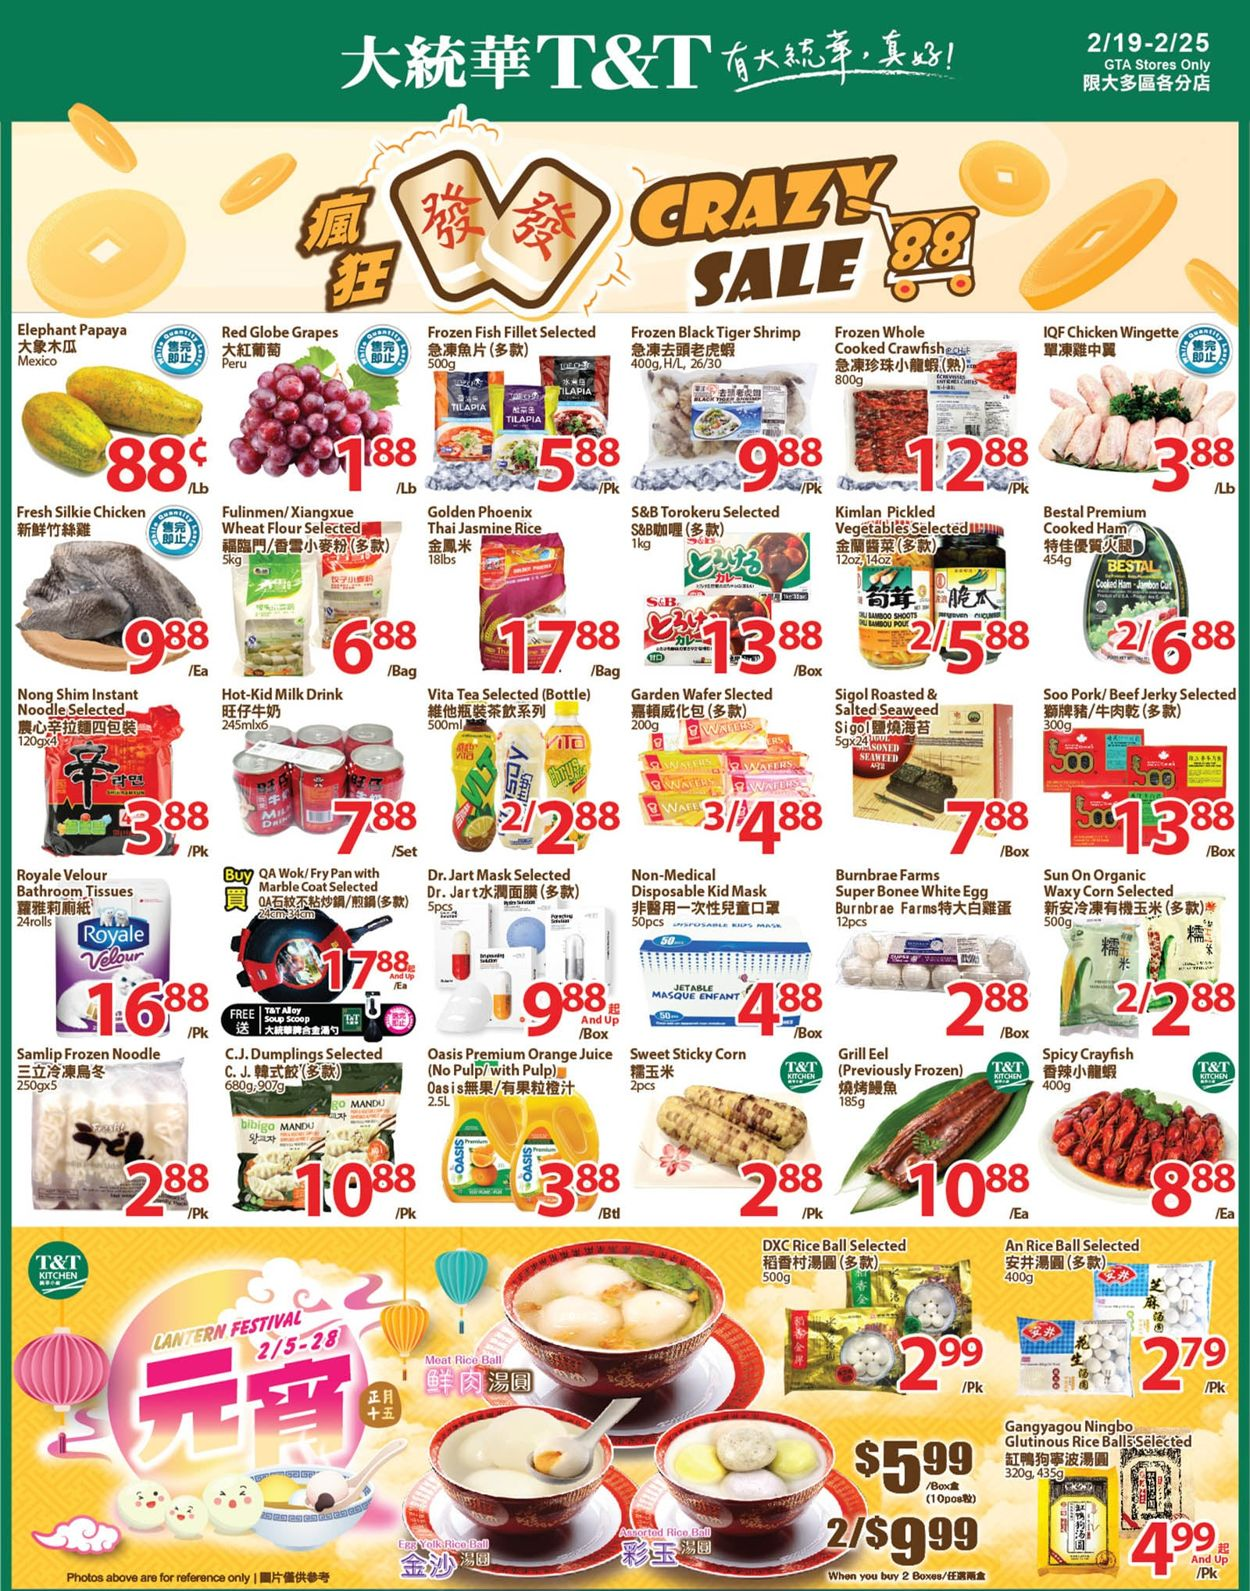 T&T Supermarket - Greater Toronto Area Flyer - 02/19-02/25/2021